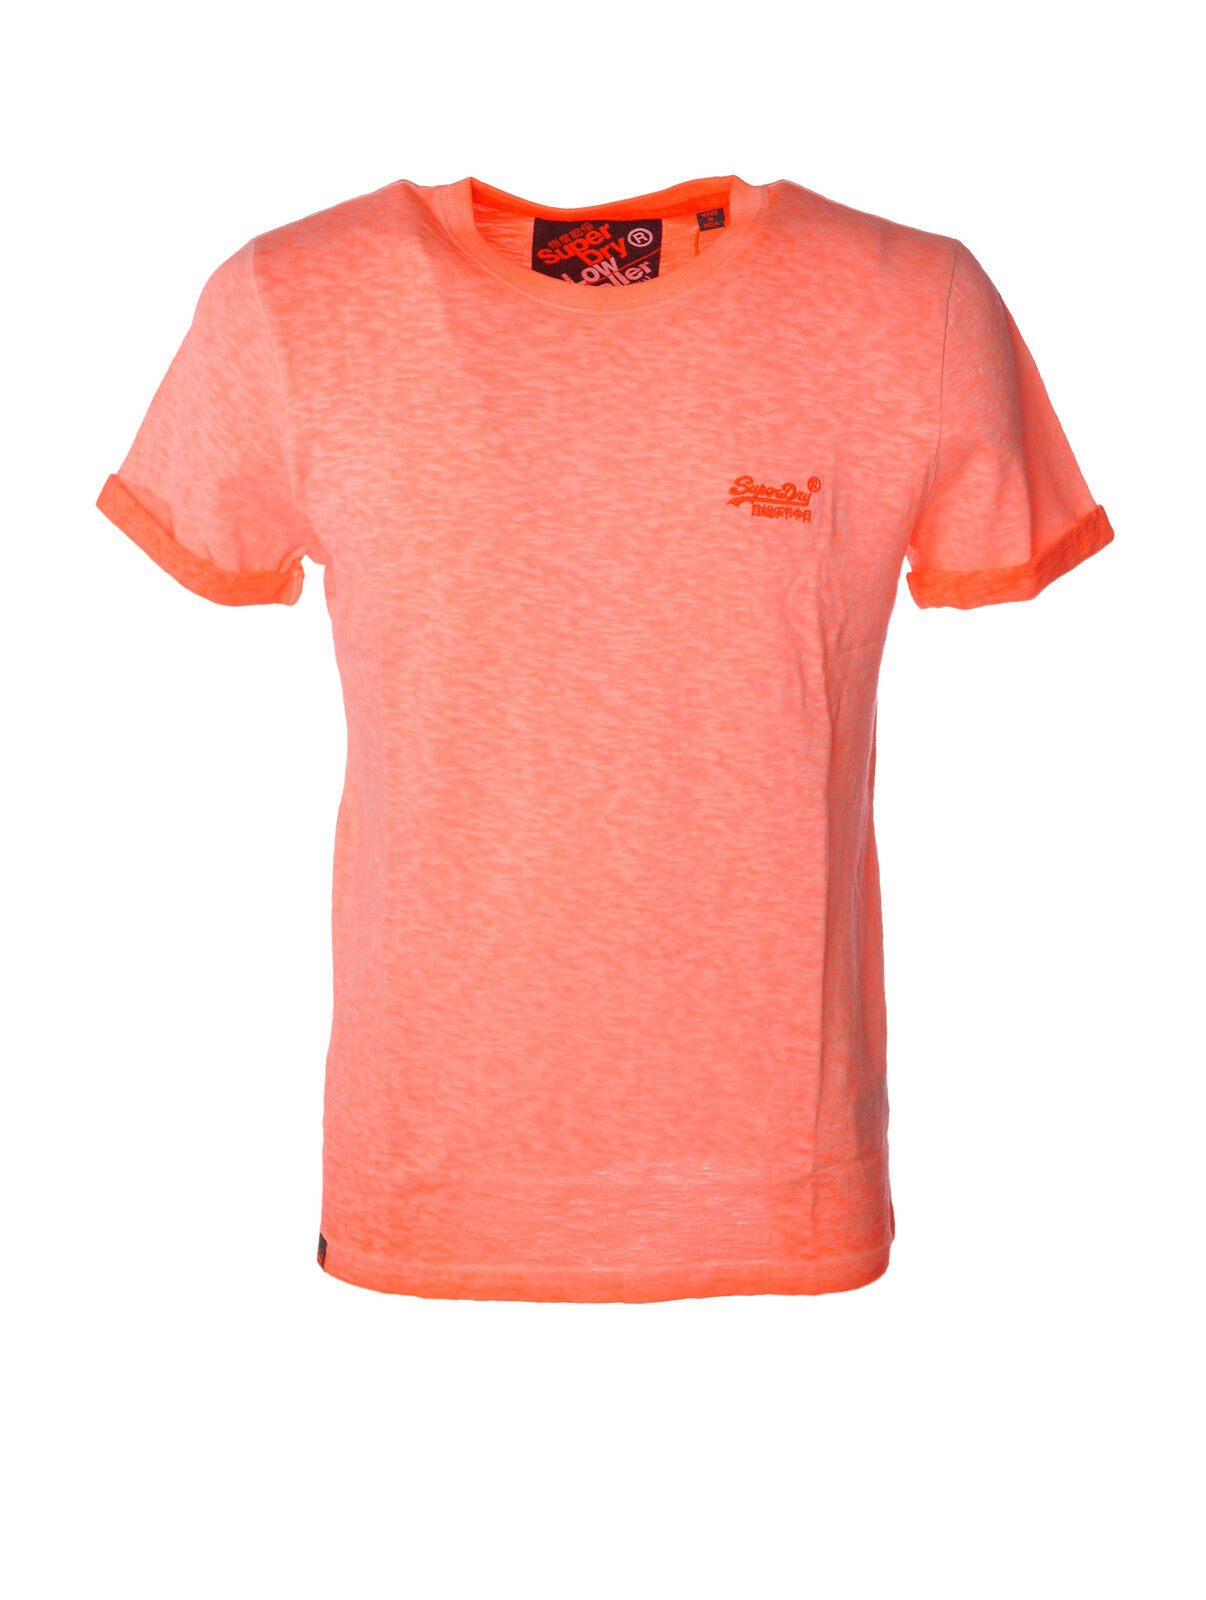 Superdry - Topwear-T-shirts - Man - orange - 3486502H184049